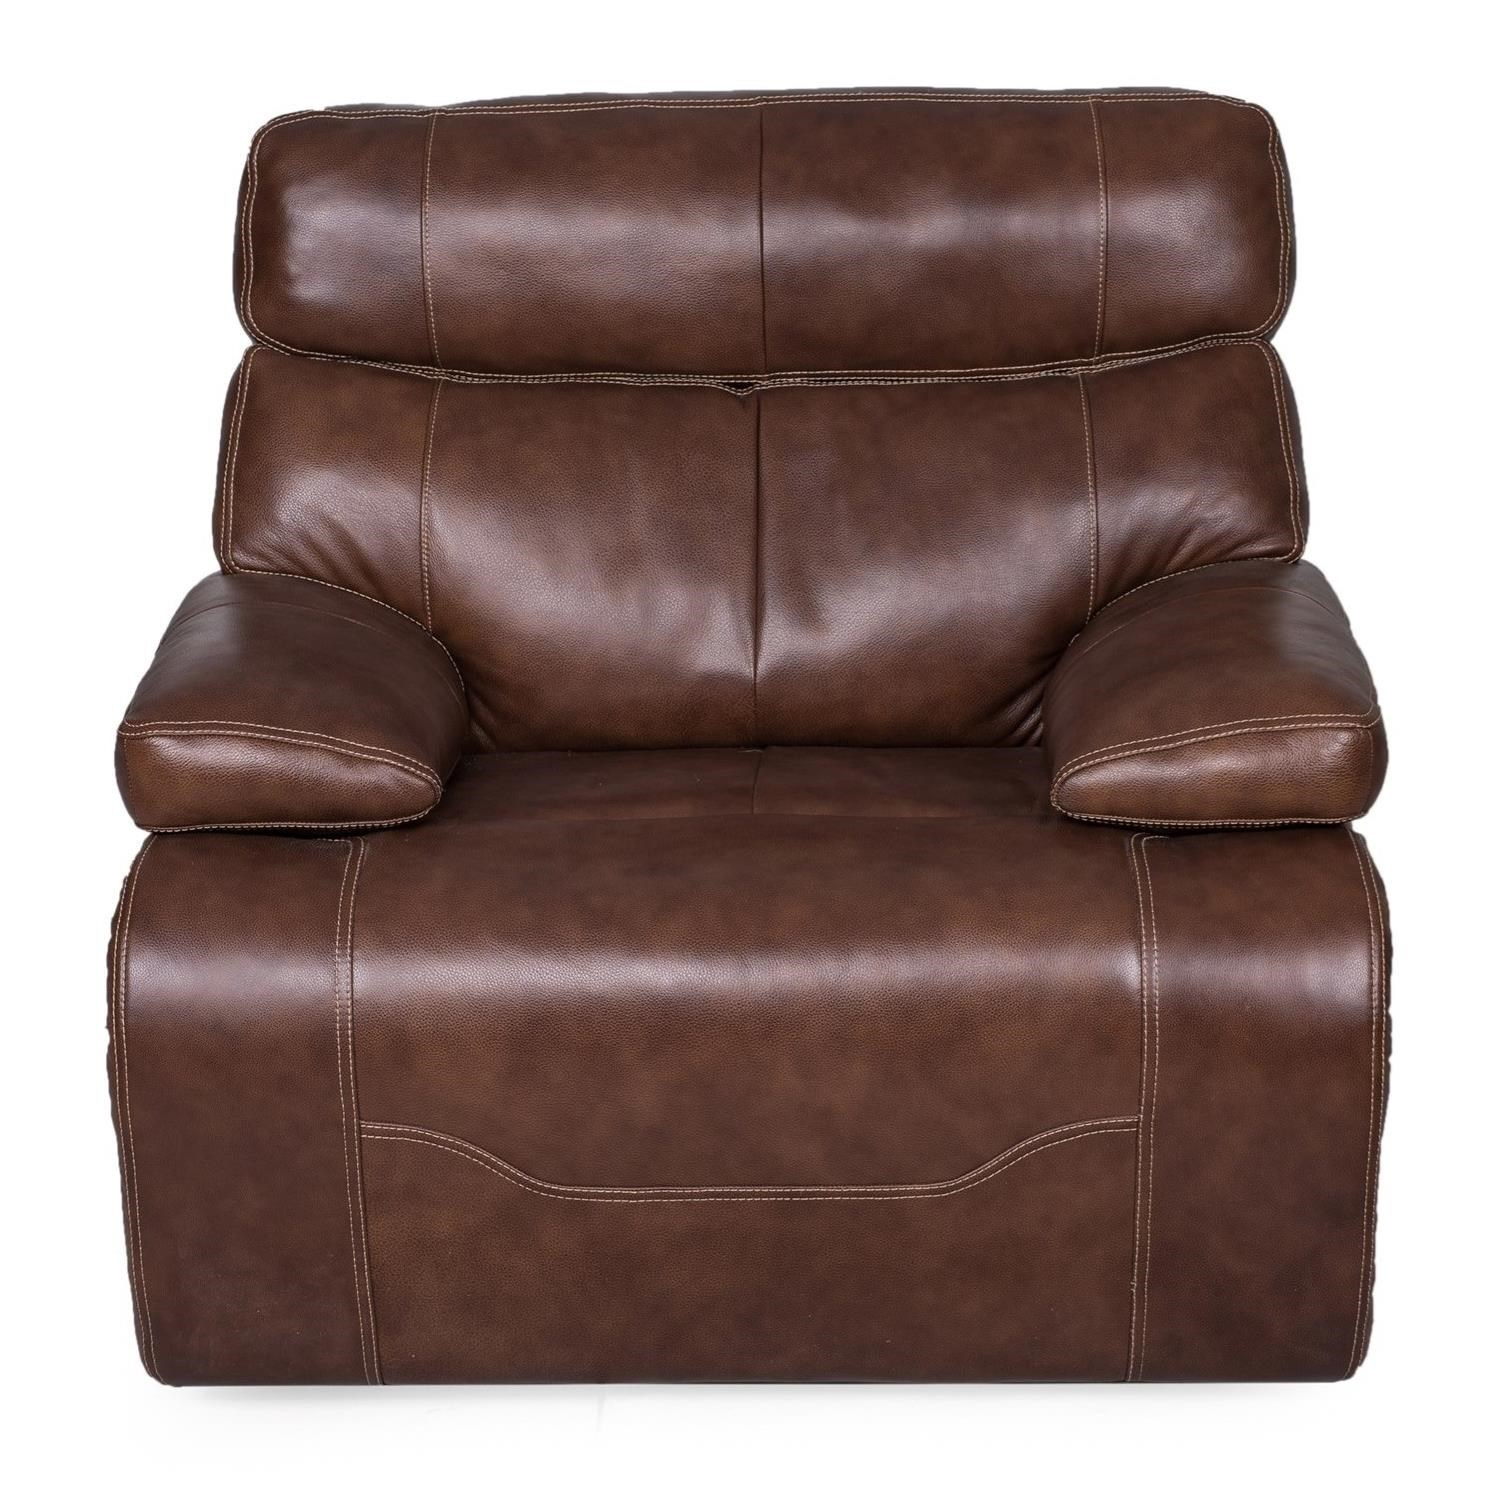 1684 Wall Recliner w/ Pwr Headrest & Lumbar by Synergy Home Furnishings at Darvin Furniture